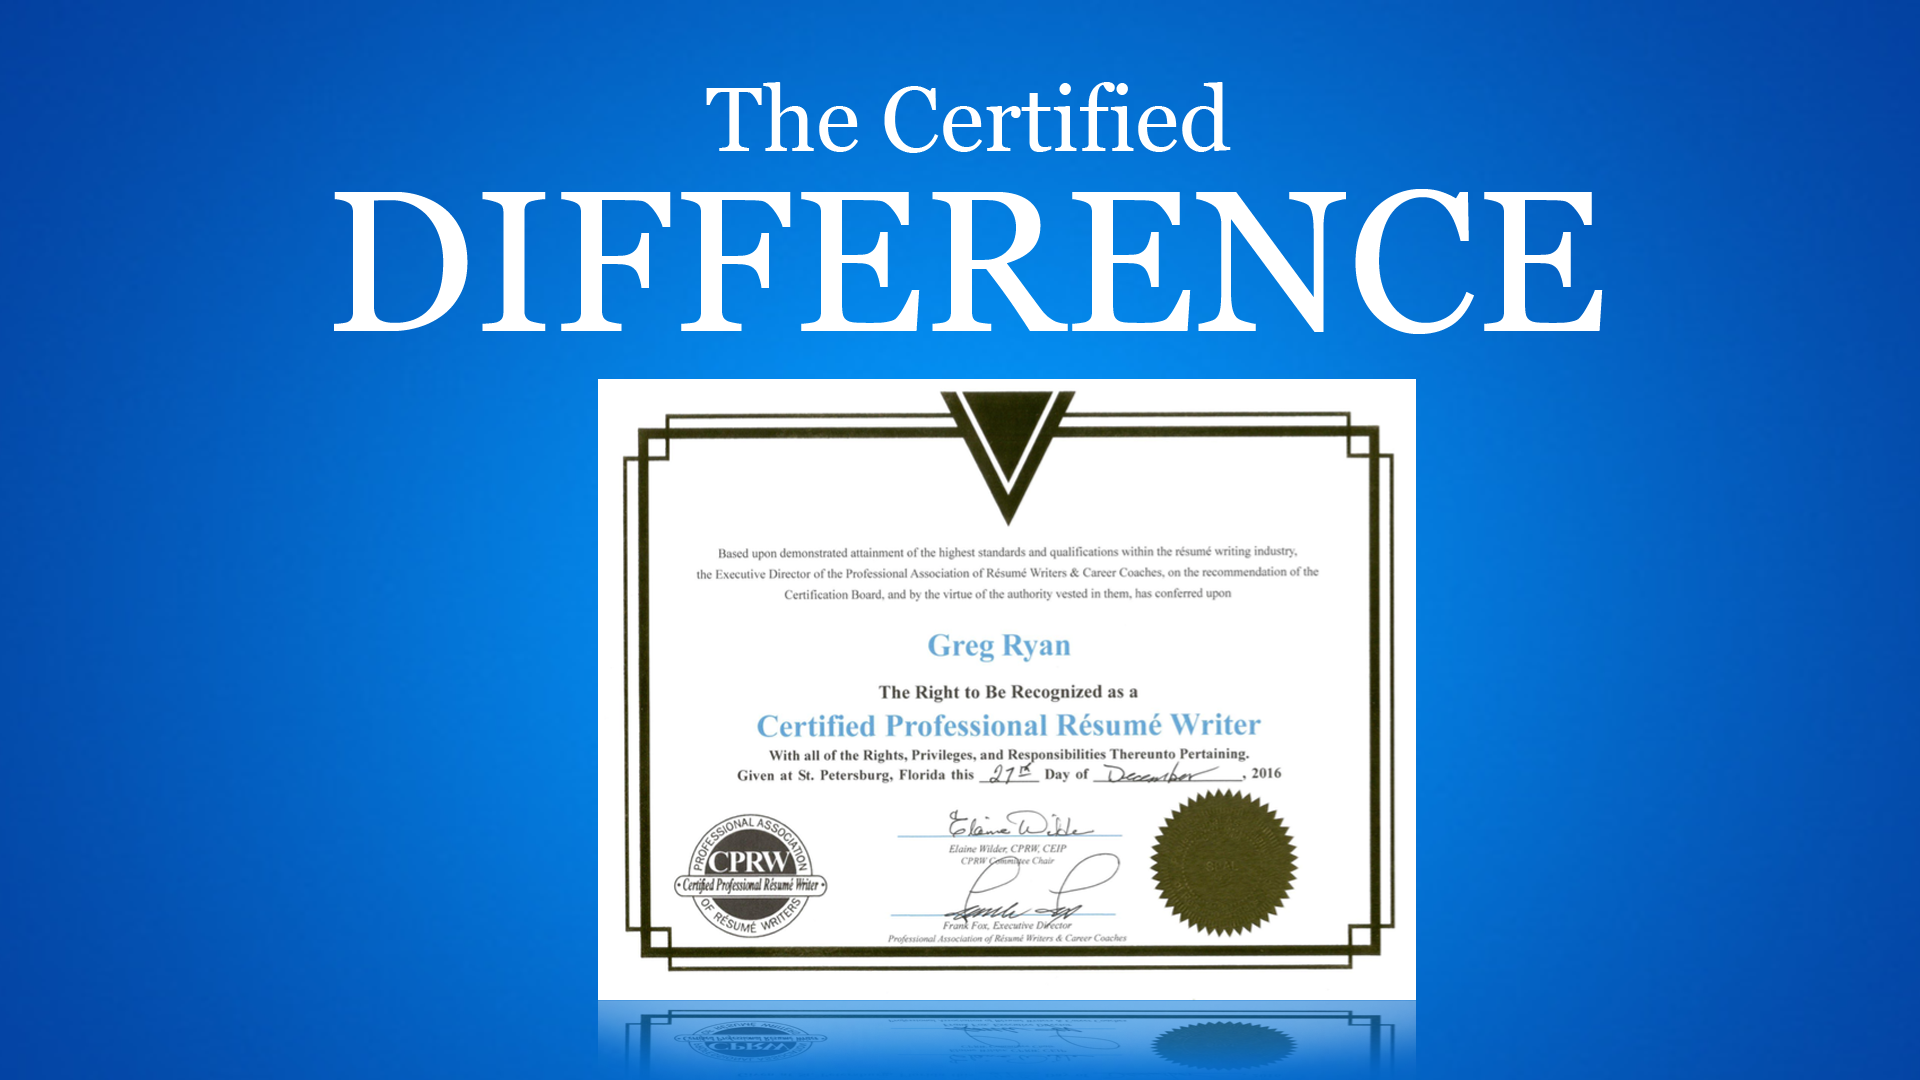 meet greg ryan - How To Become A Certified Professional Resume Writer